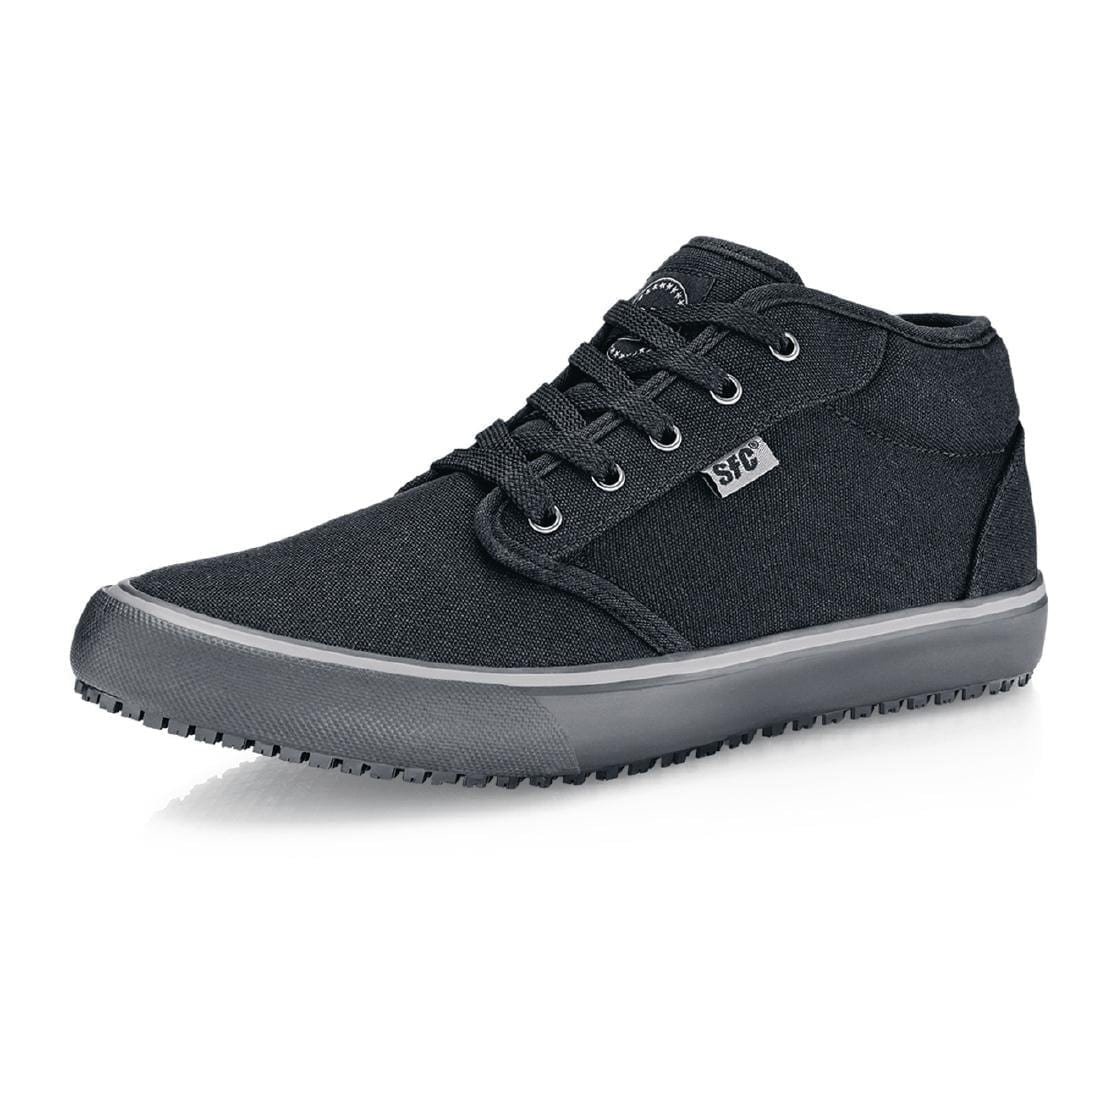 Shoes For Crews Coated Canvas Lace up Boot - Size 37-0